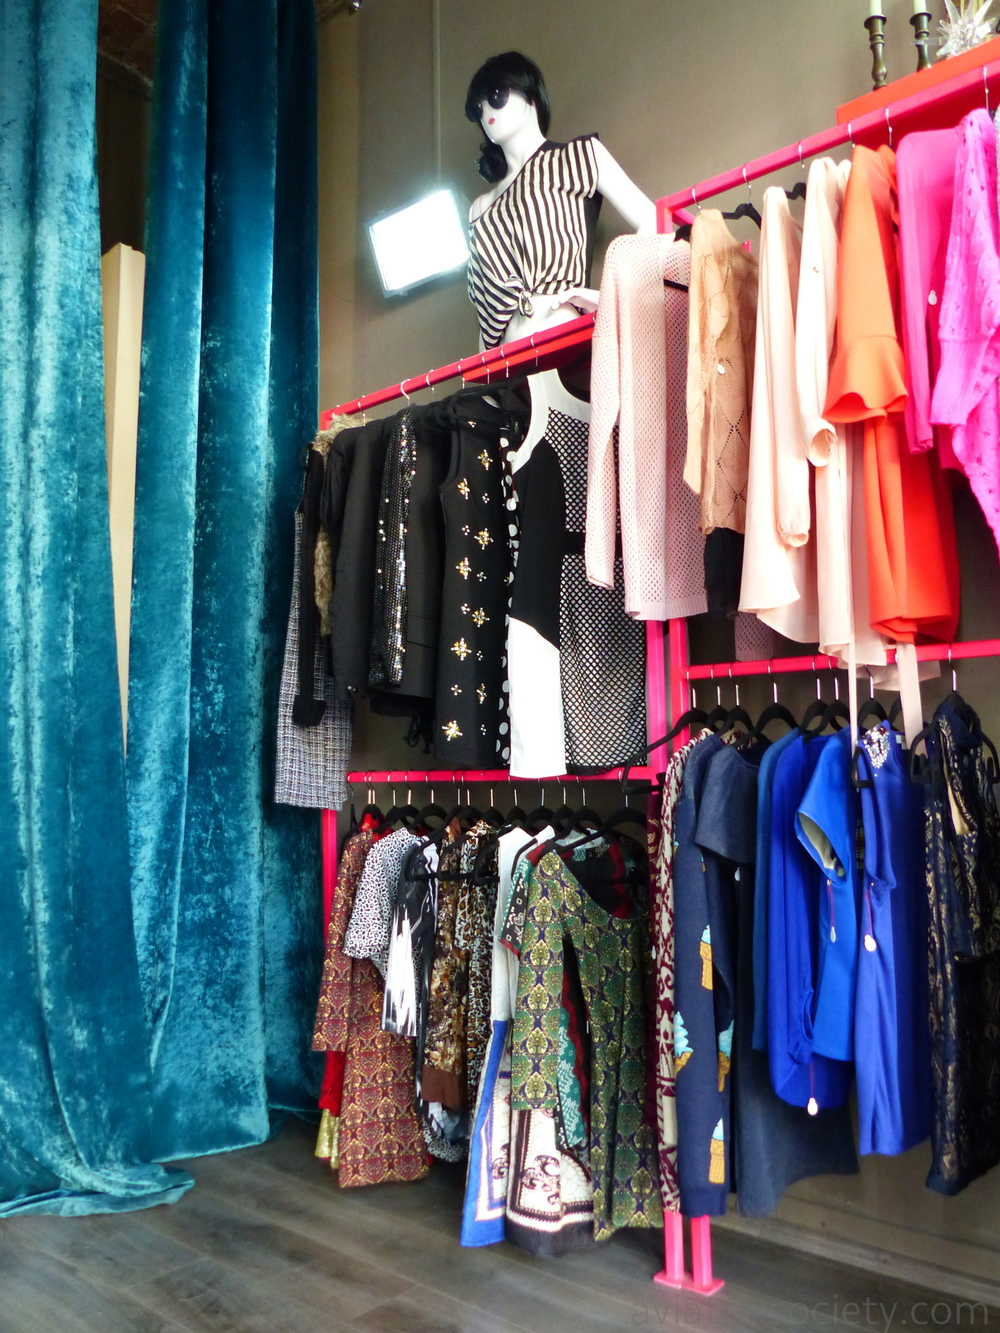 Feminine jewelry, dresses, tops, and skirts with bright colors and fun prints at the Sibling Boutique in Roma - part of our shopping guide for Mexico City